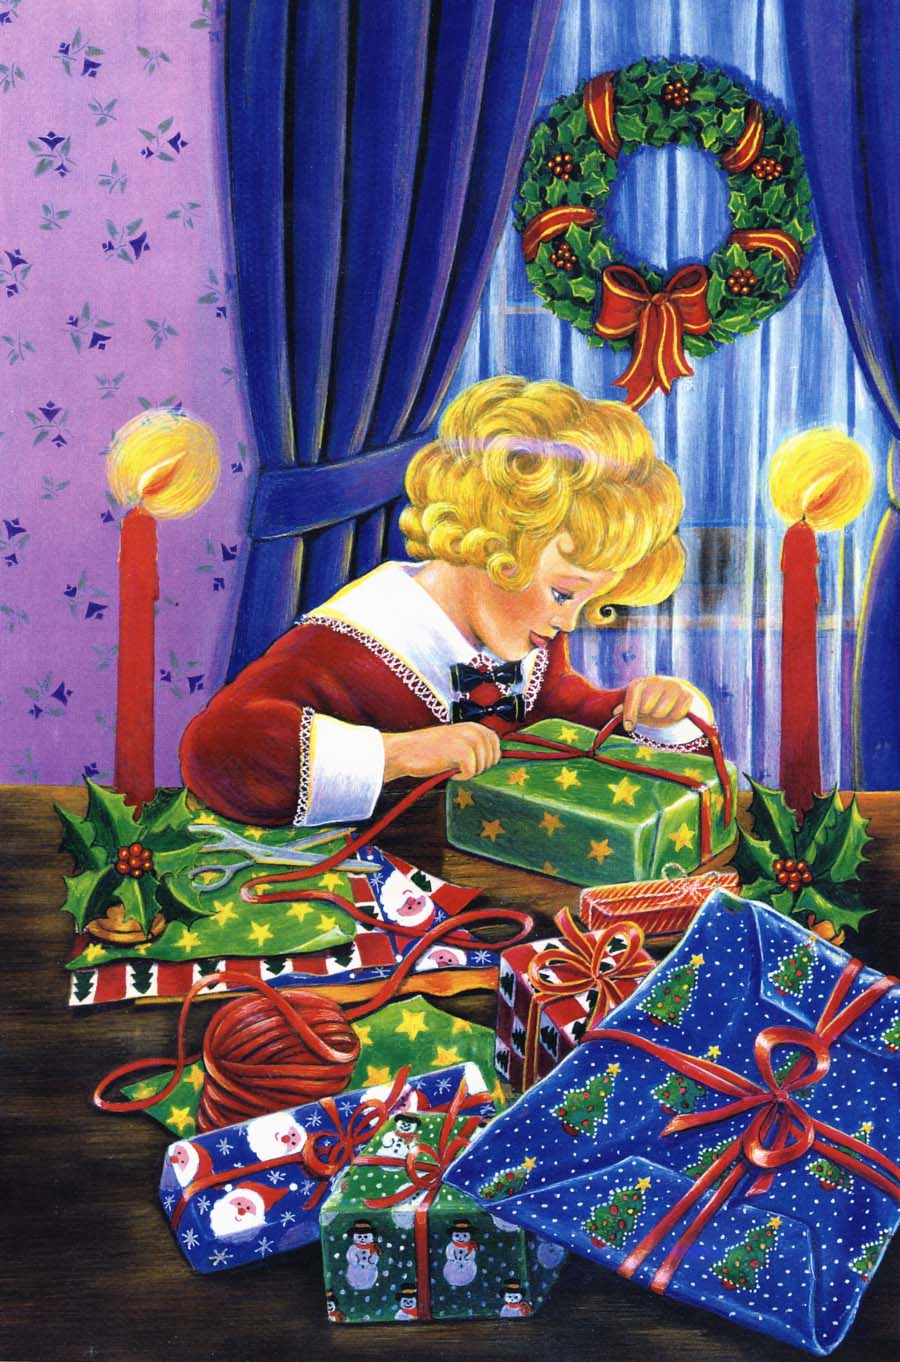 Illustration-girl wrapping presents1-Pamela Hamilton